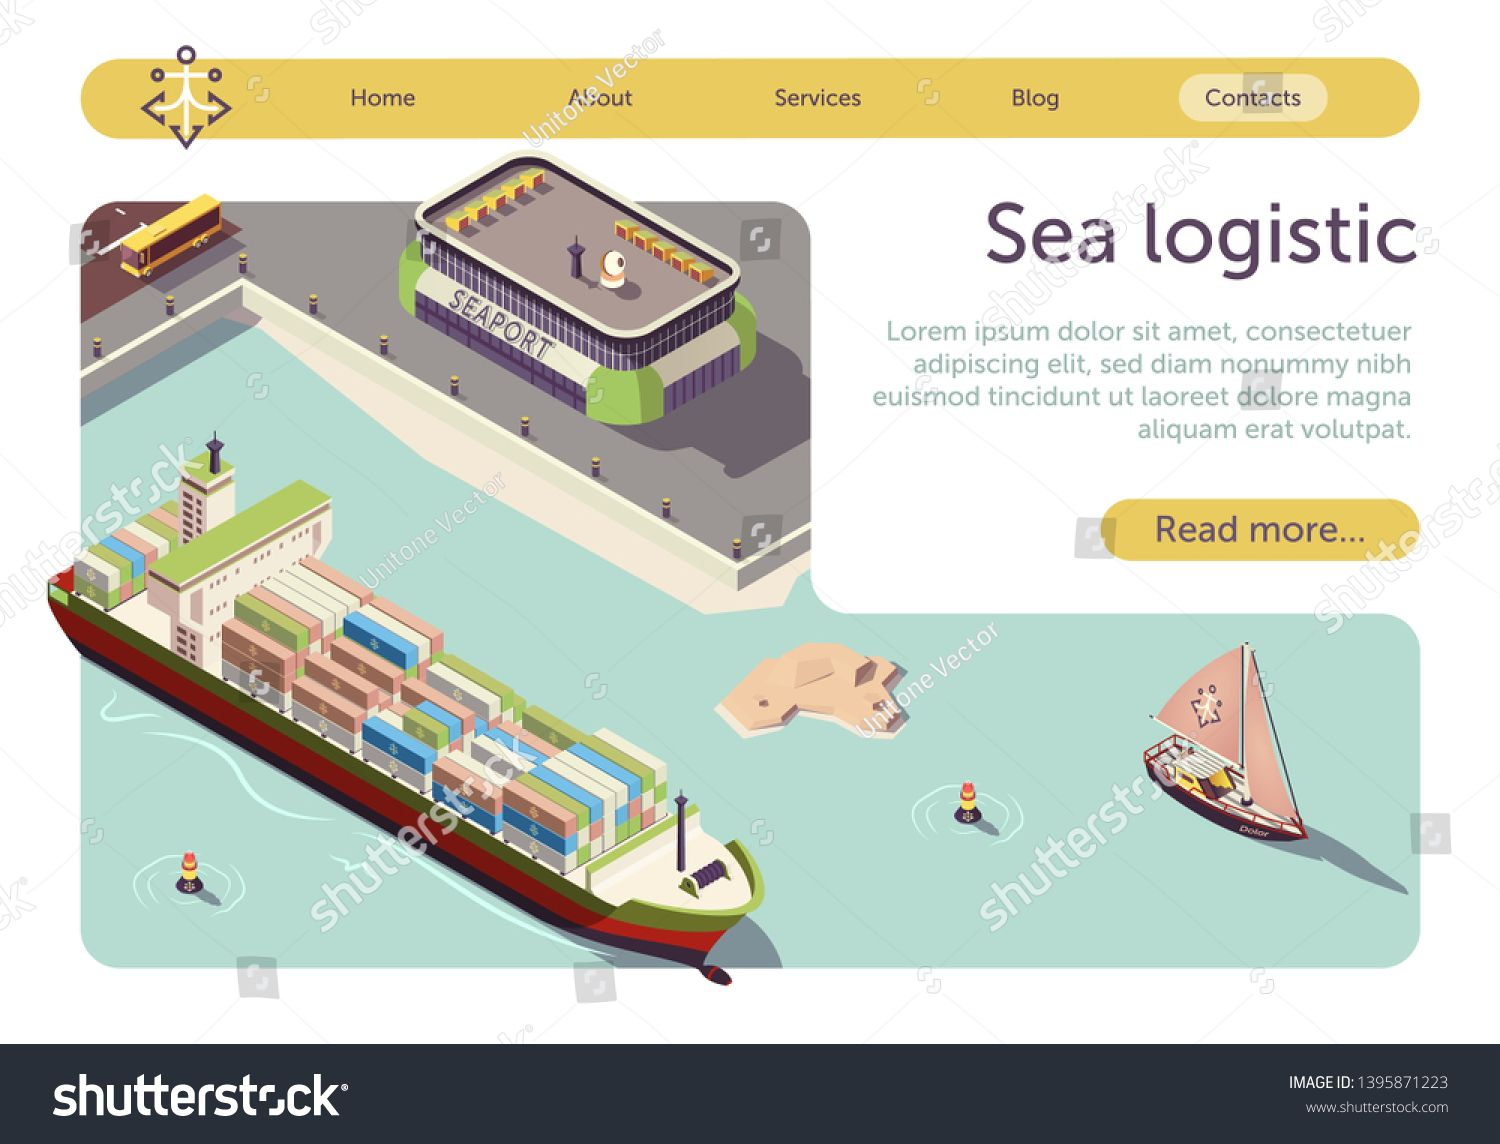 Sea Logistic and Maritime Transportation Isometric Banner. Sea Freight and Shipping. Seaport, Cargo Ships, Steel Containers, Sail-Boat and Bus. Import Export Transport Industry. Vector 3d Illustration #Sponsored , #SPONSORED, #Shipping#Freight#Seaport#Ships